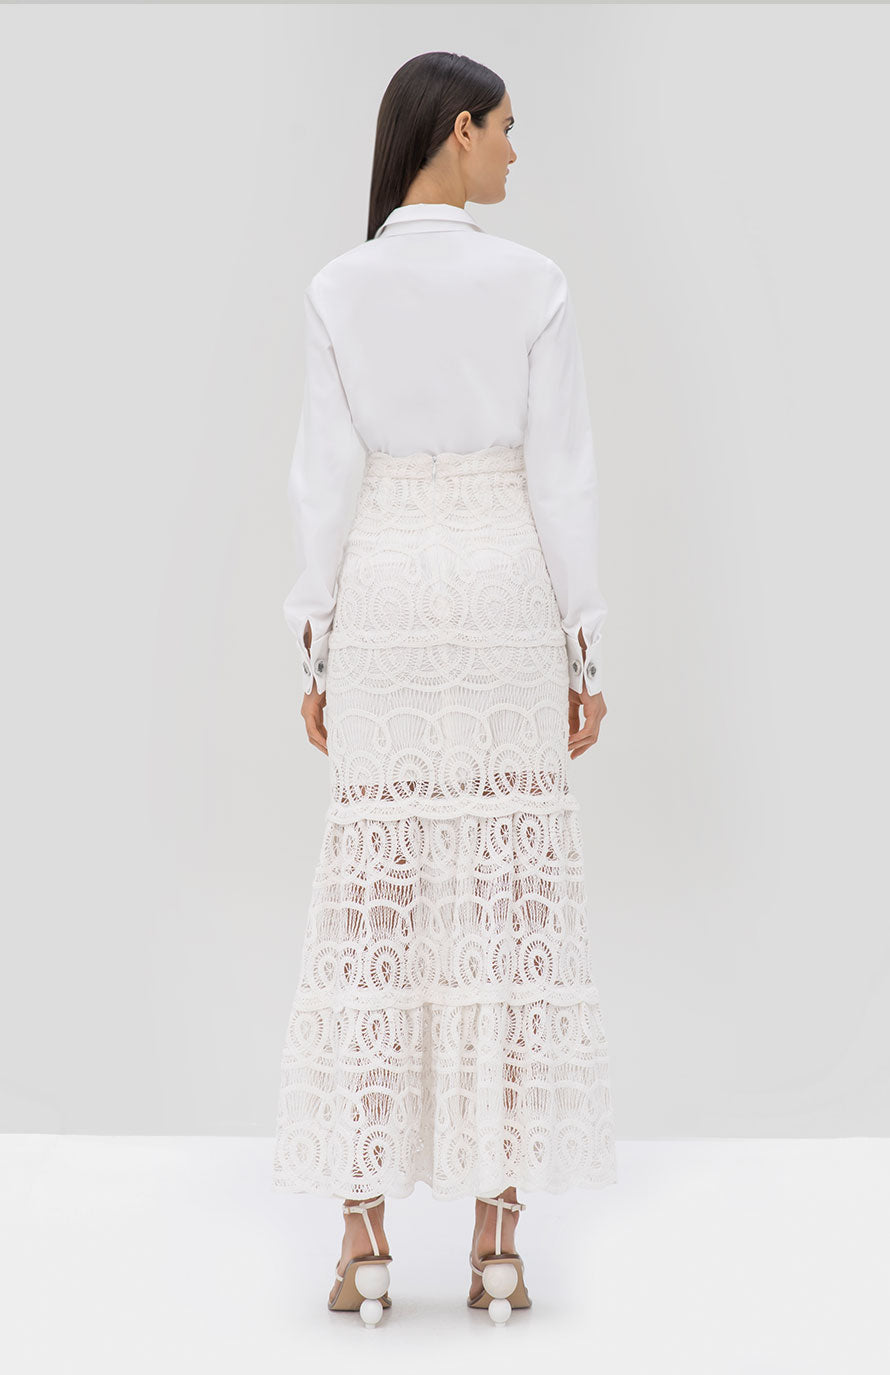 Alexis Roxanne Top and Davoni Skirt in White from the Pre Fall 2019 Ready To Wear Collection - Rear View